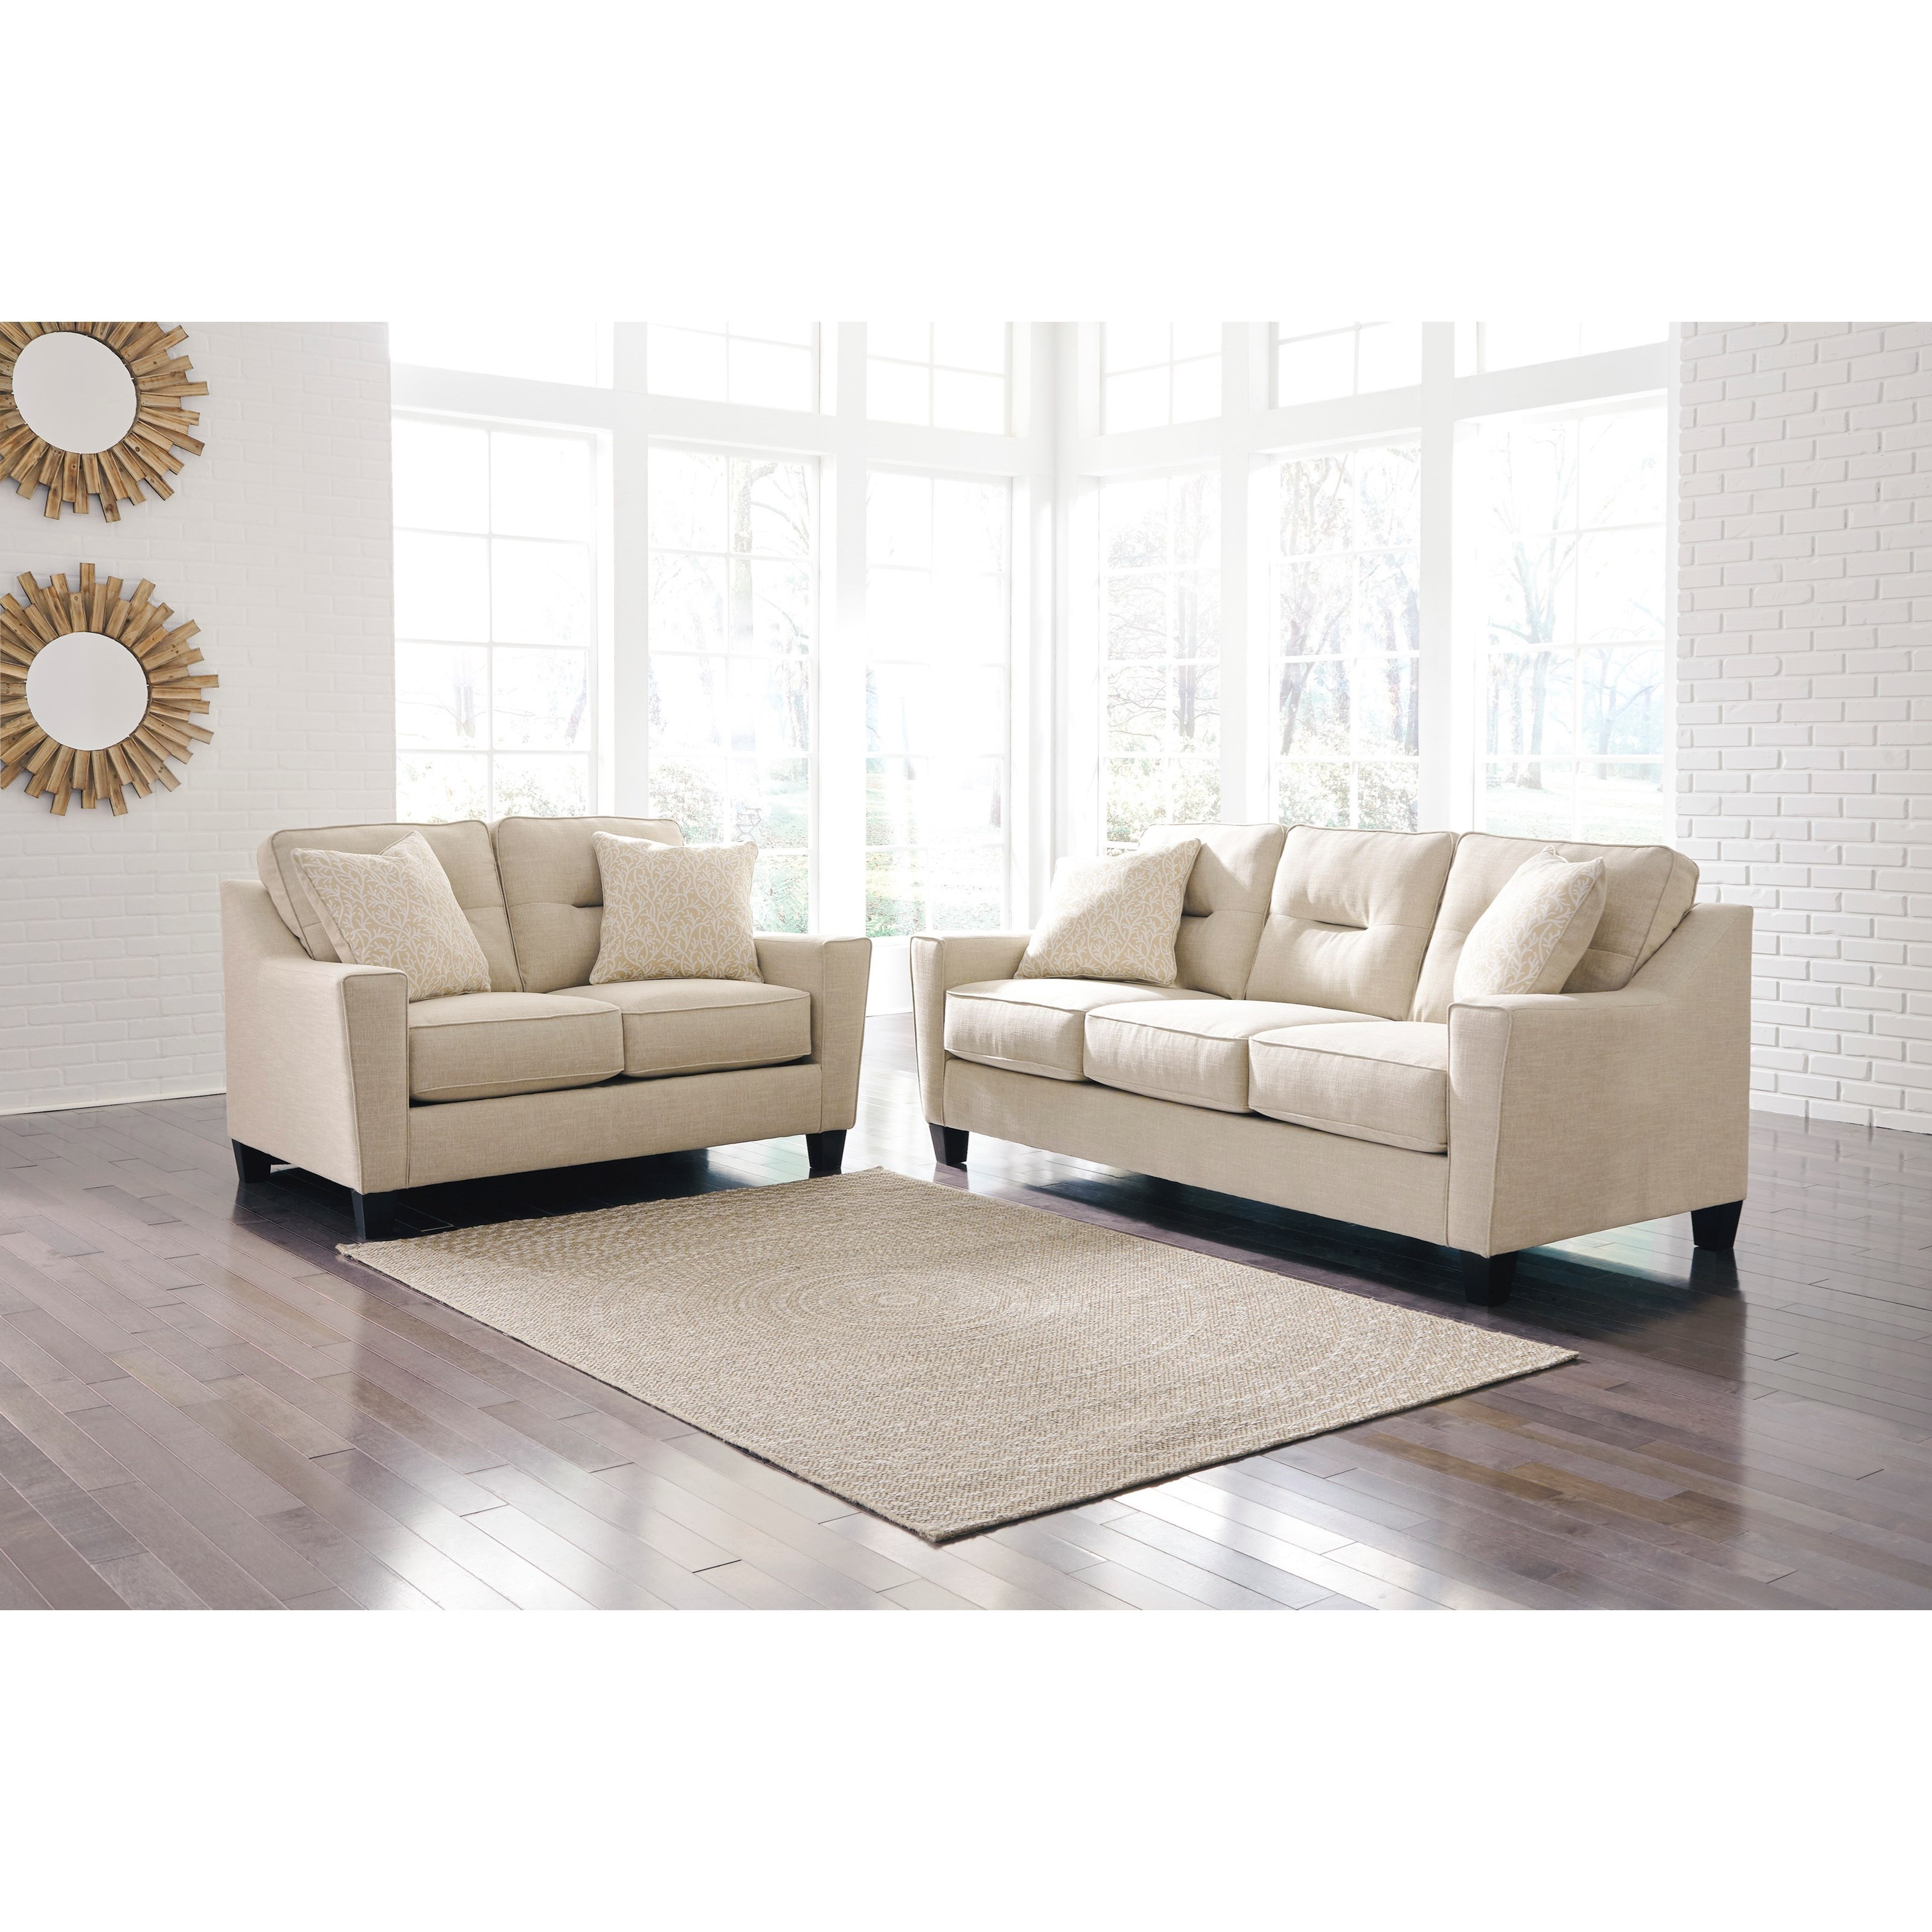 Efo Furniture Outlet Dunmore Pa